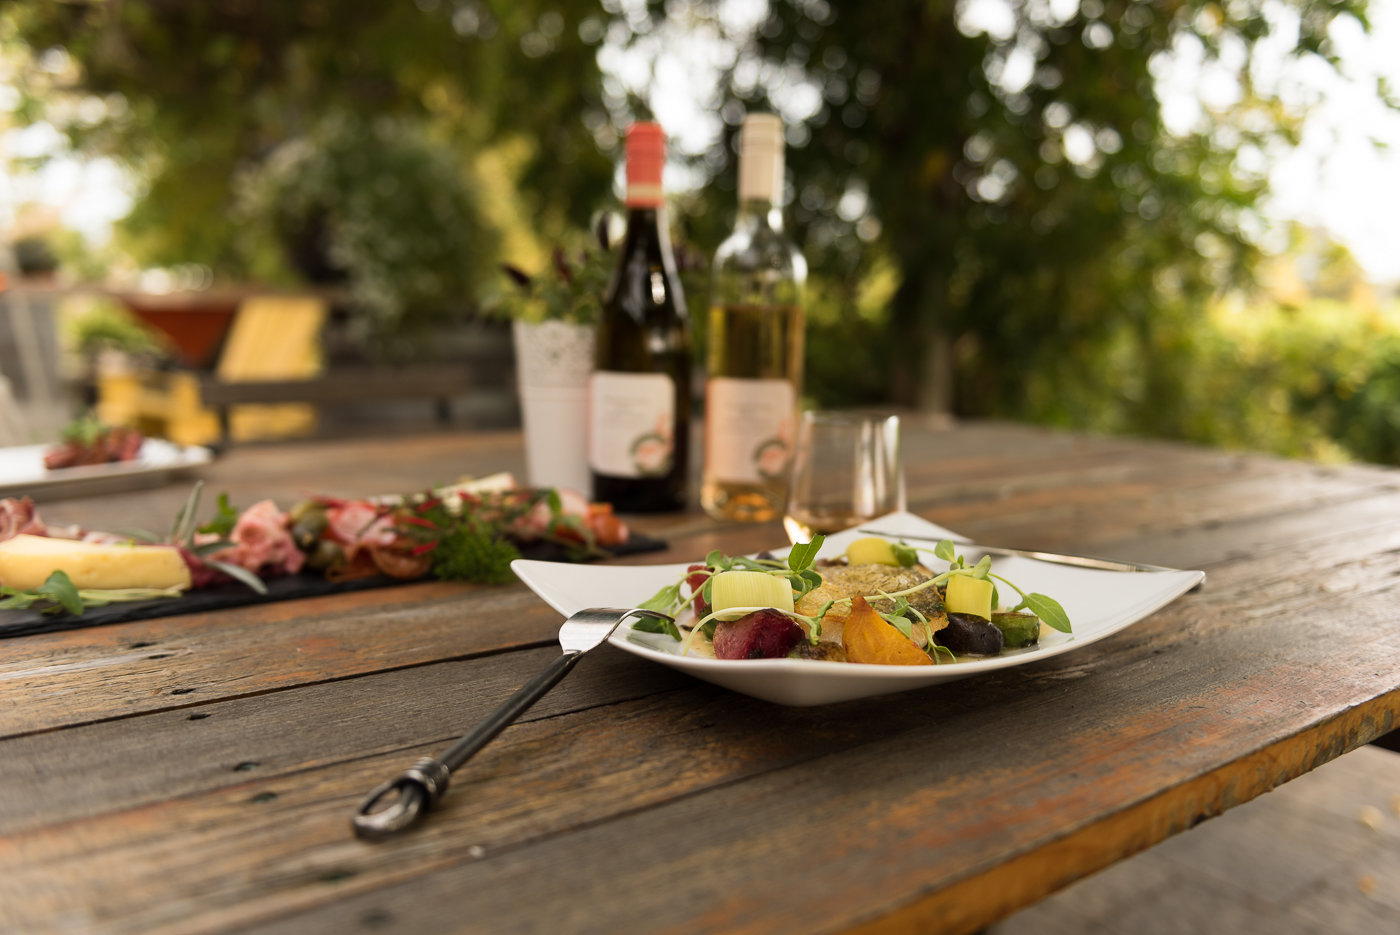 Photo of food and wine from a local winery